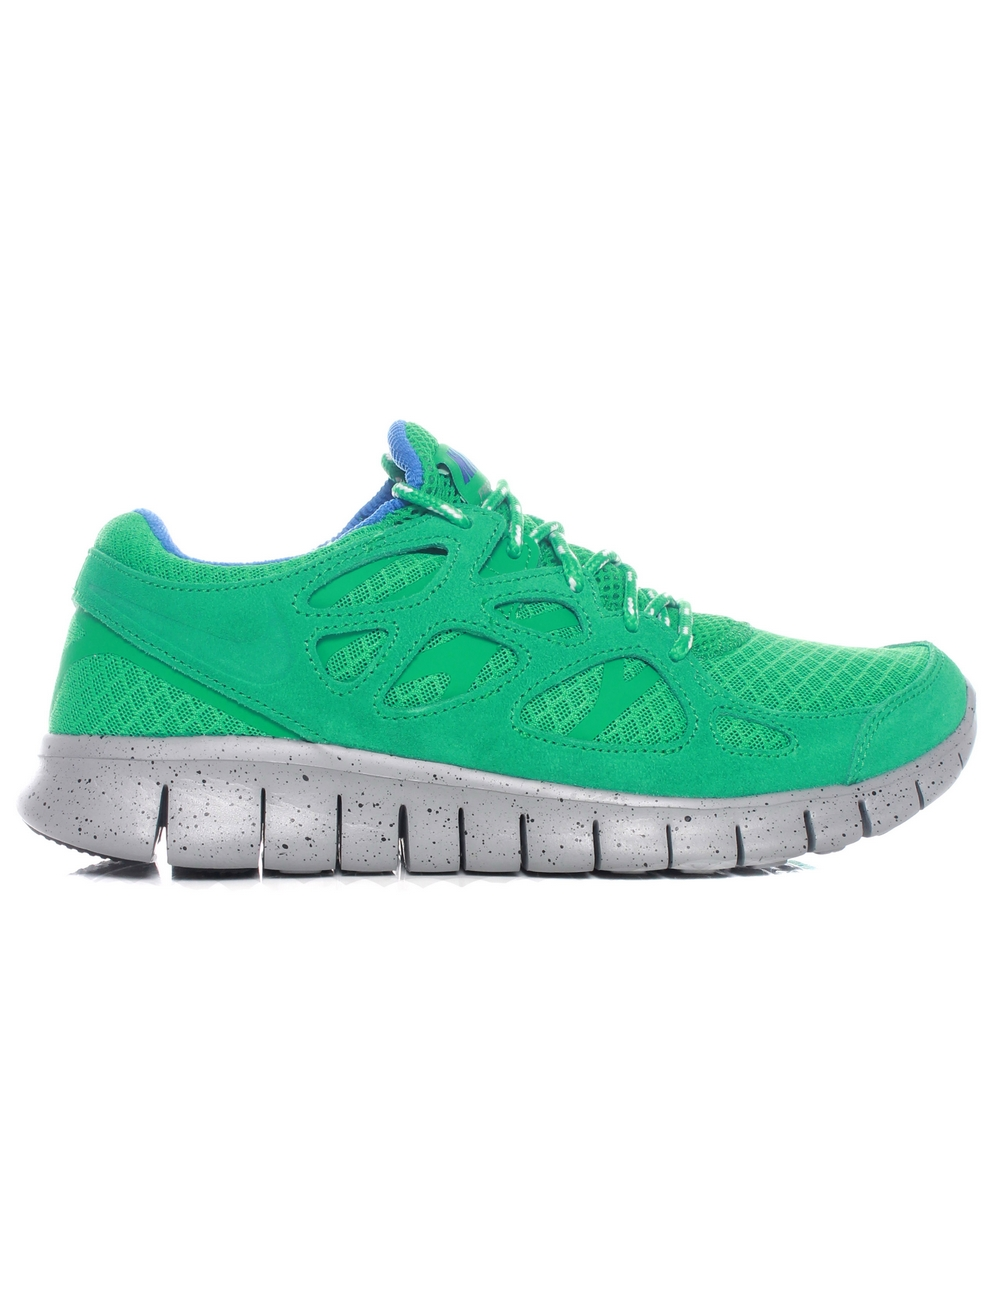 premium selection 0a87a 8857e Mens Nike Free Run 3 Anti-Fur SG67